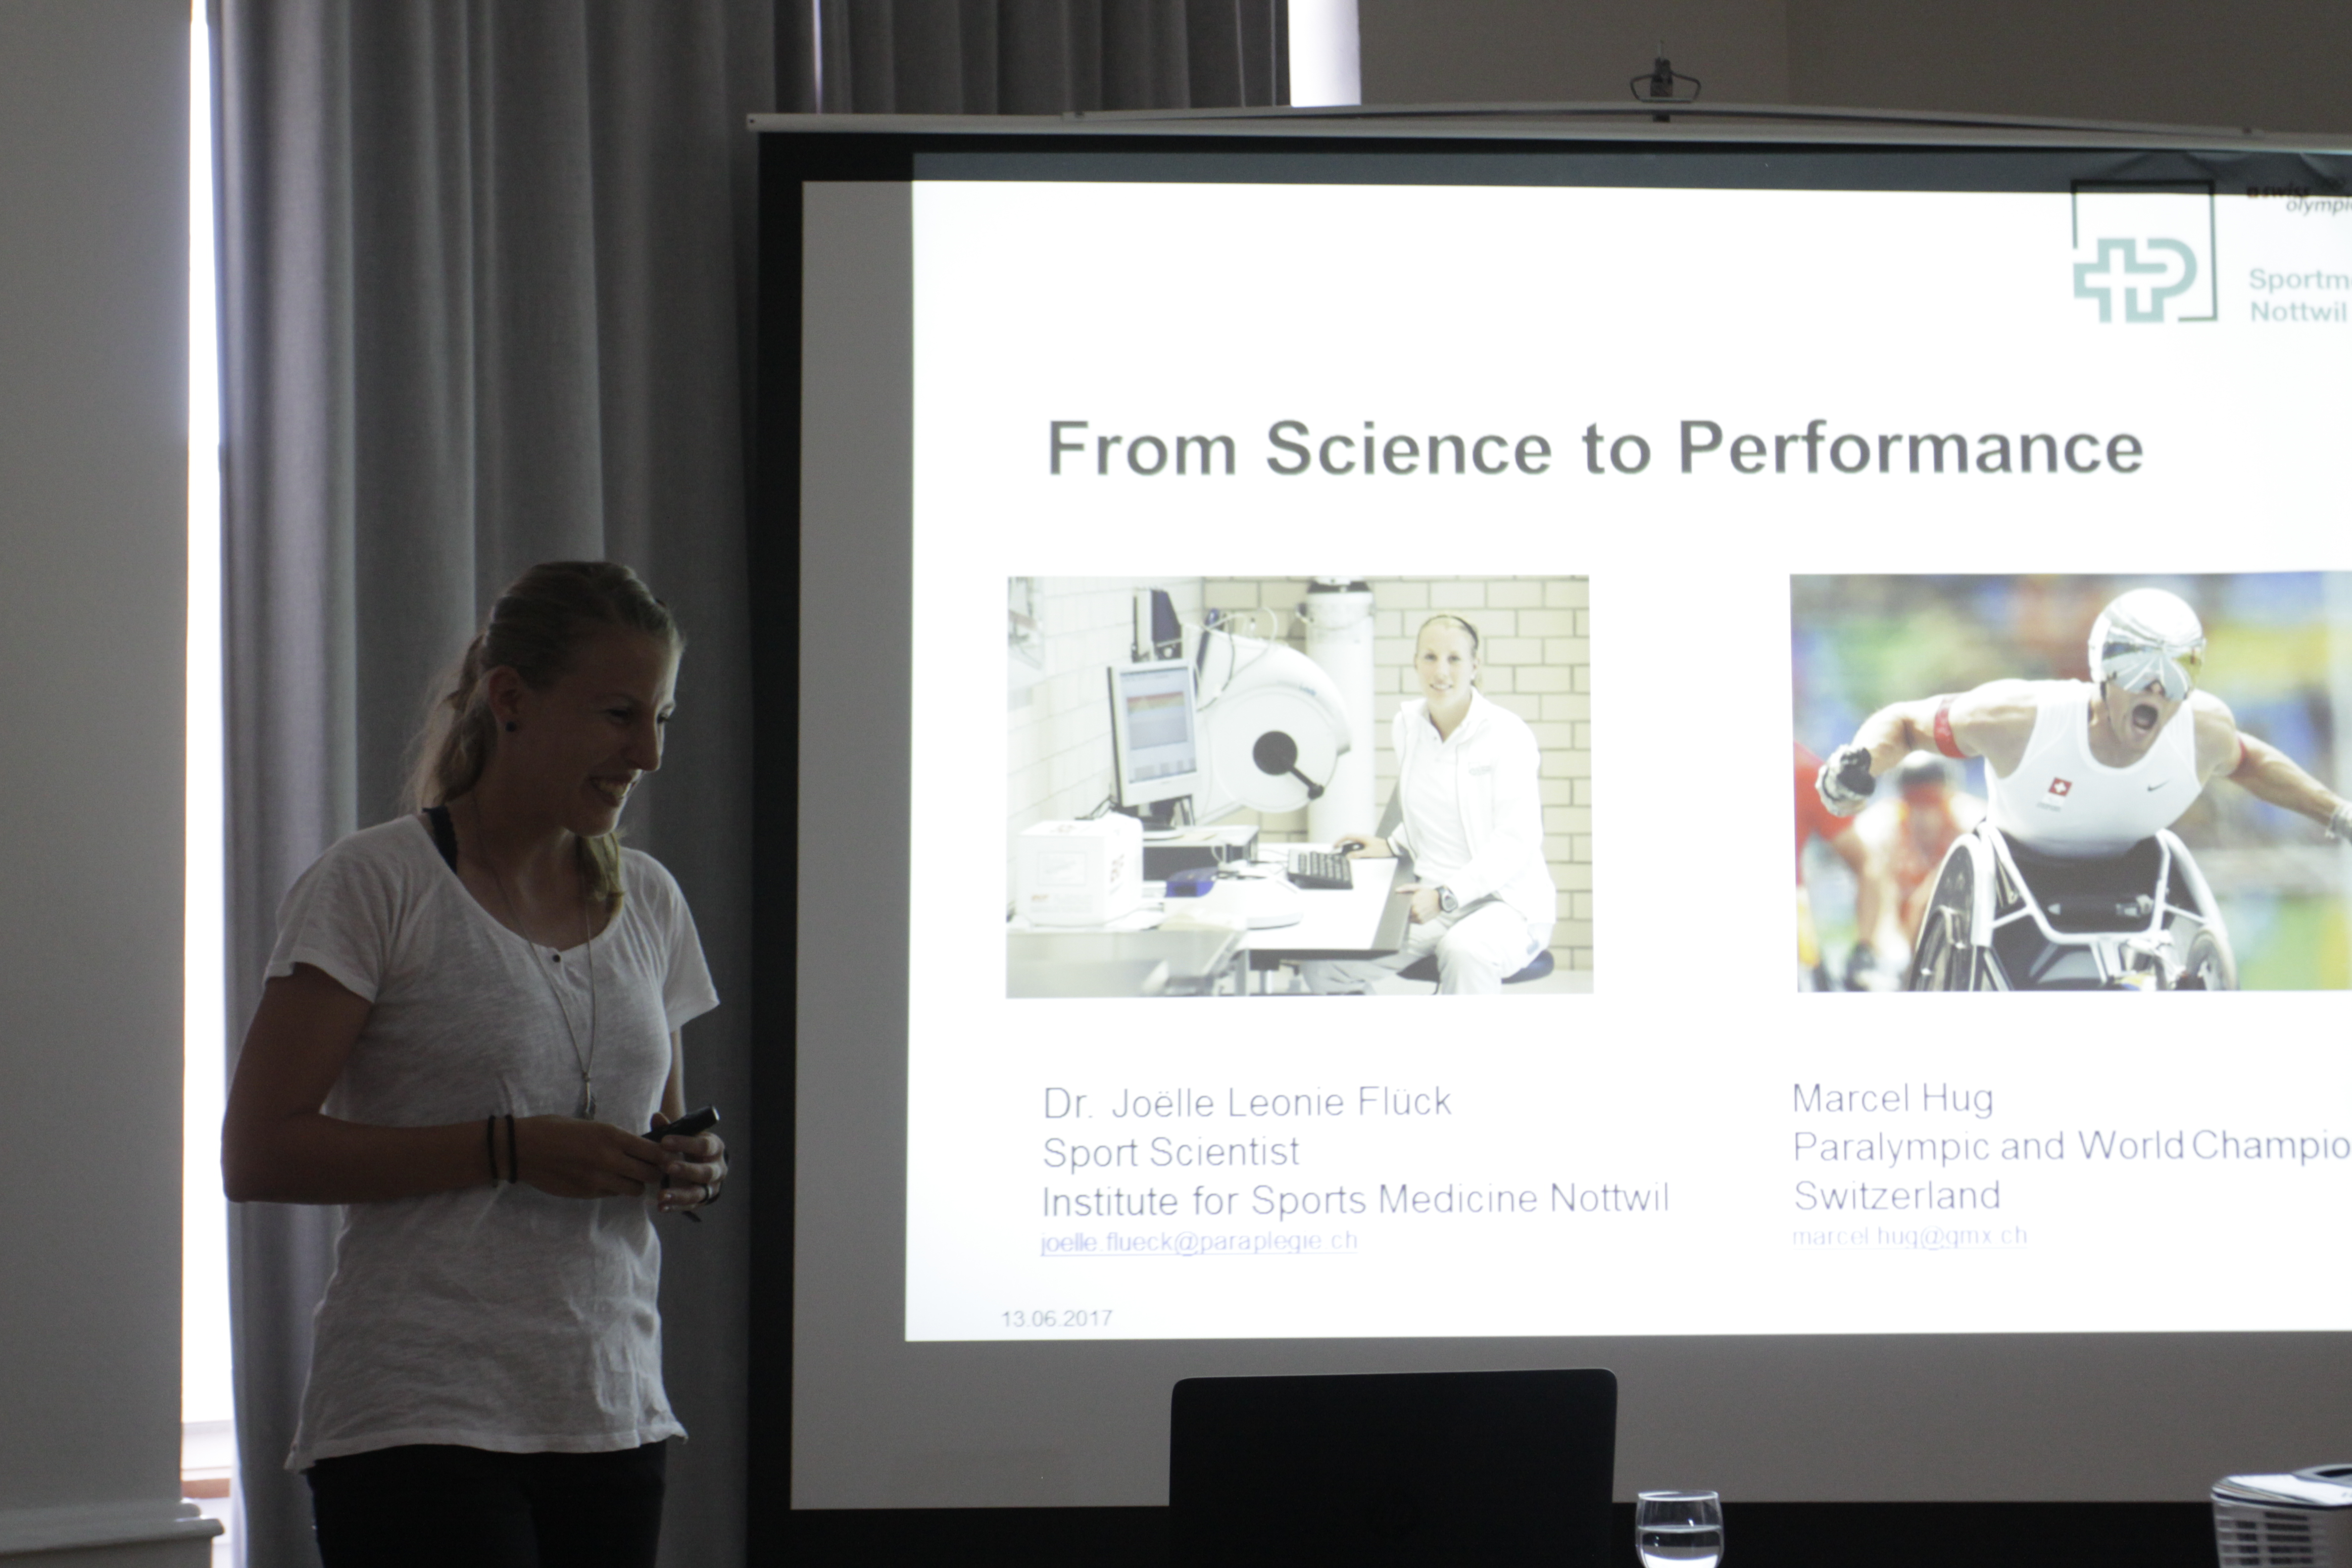 From science to performance